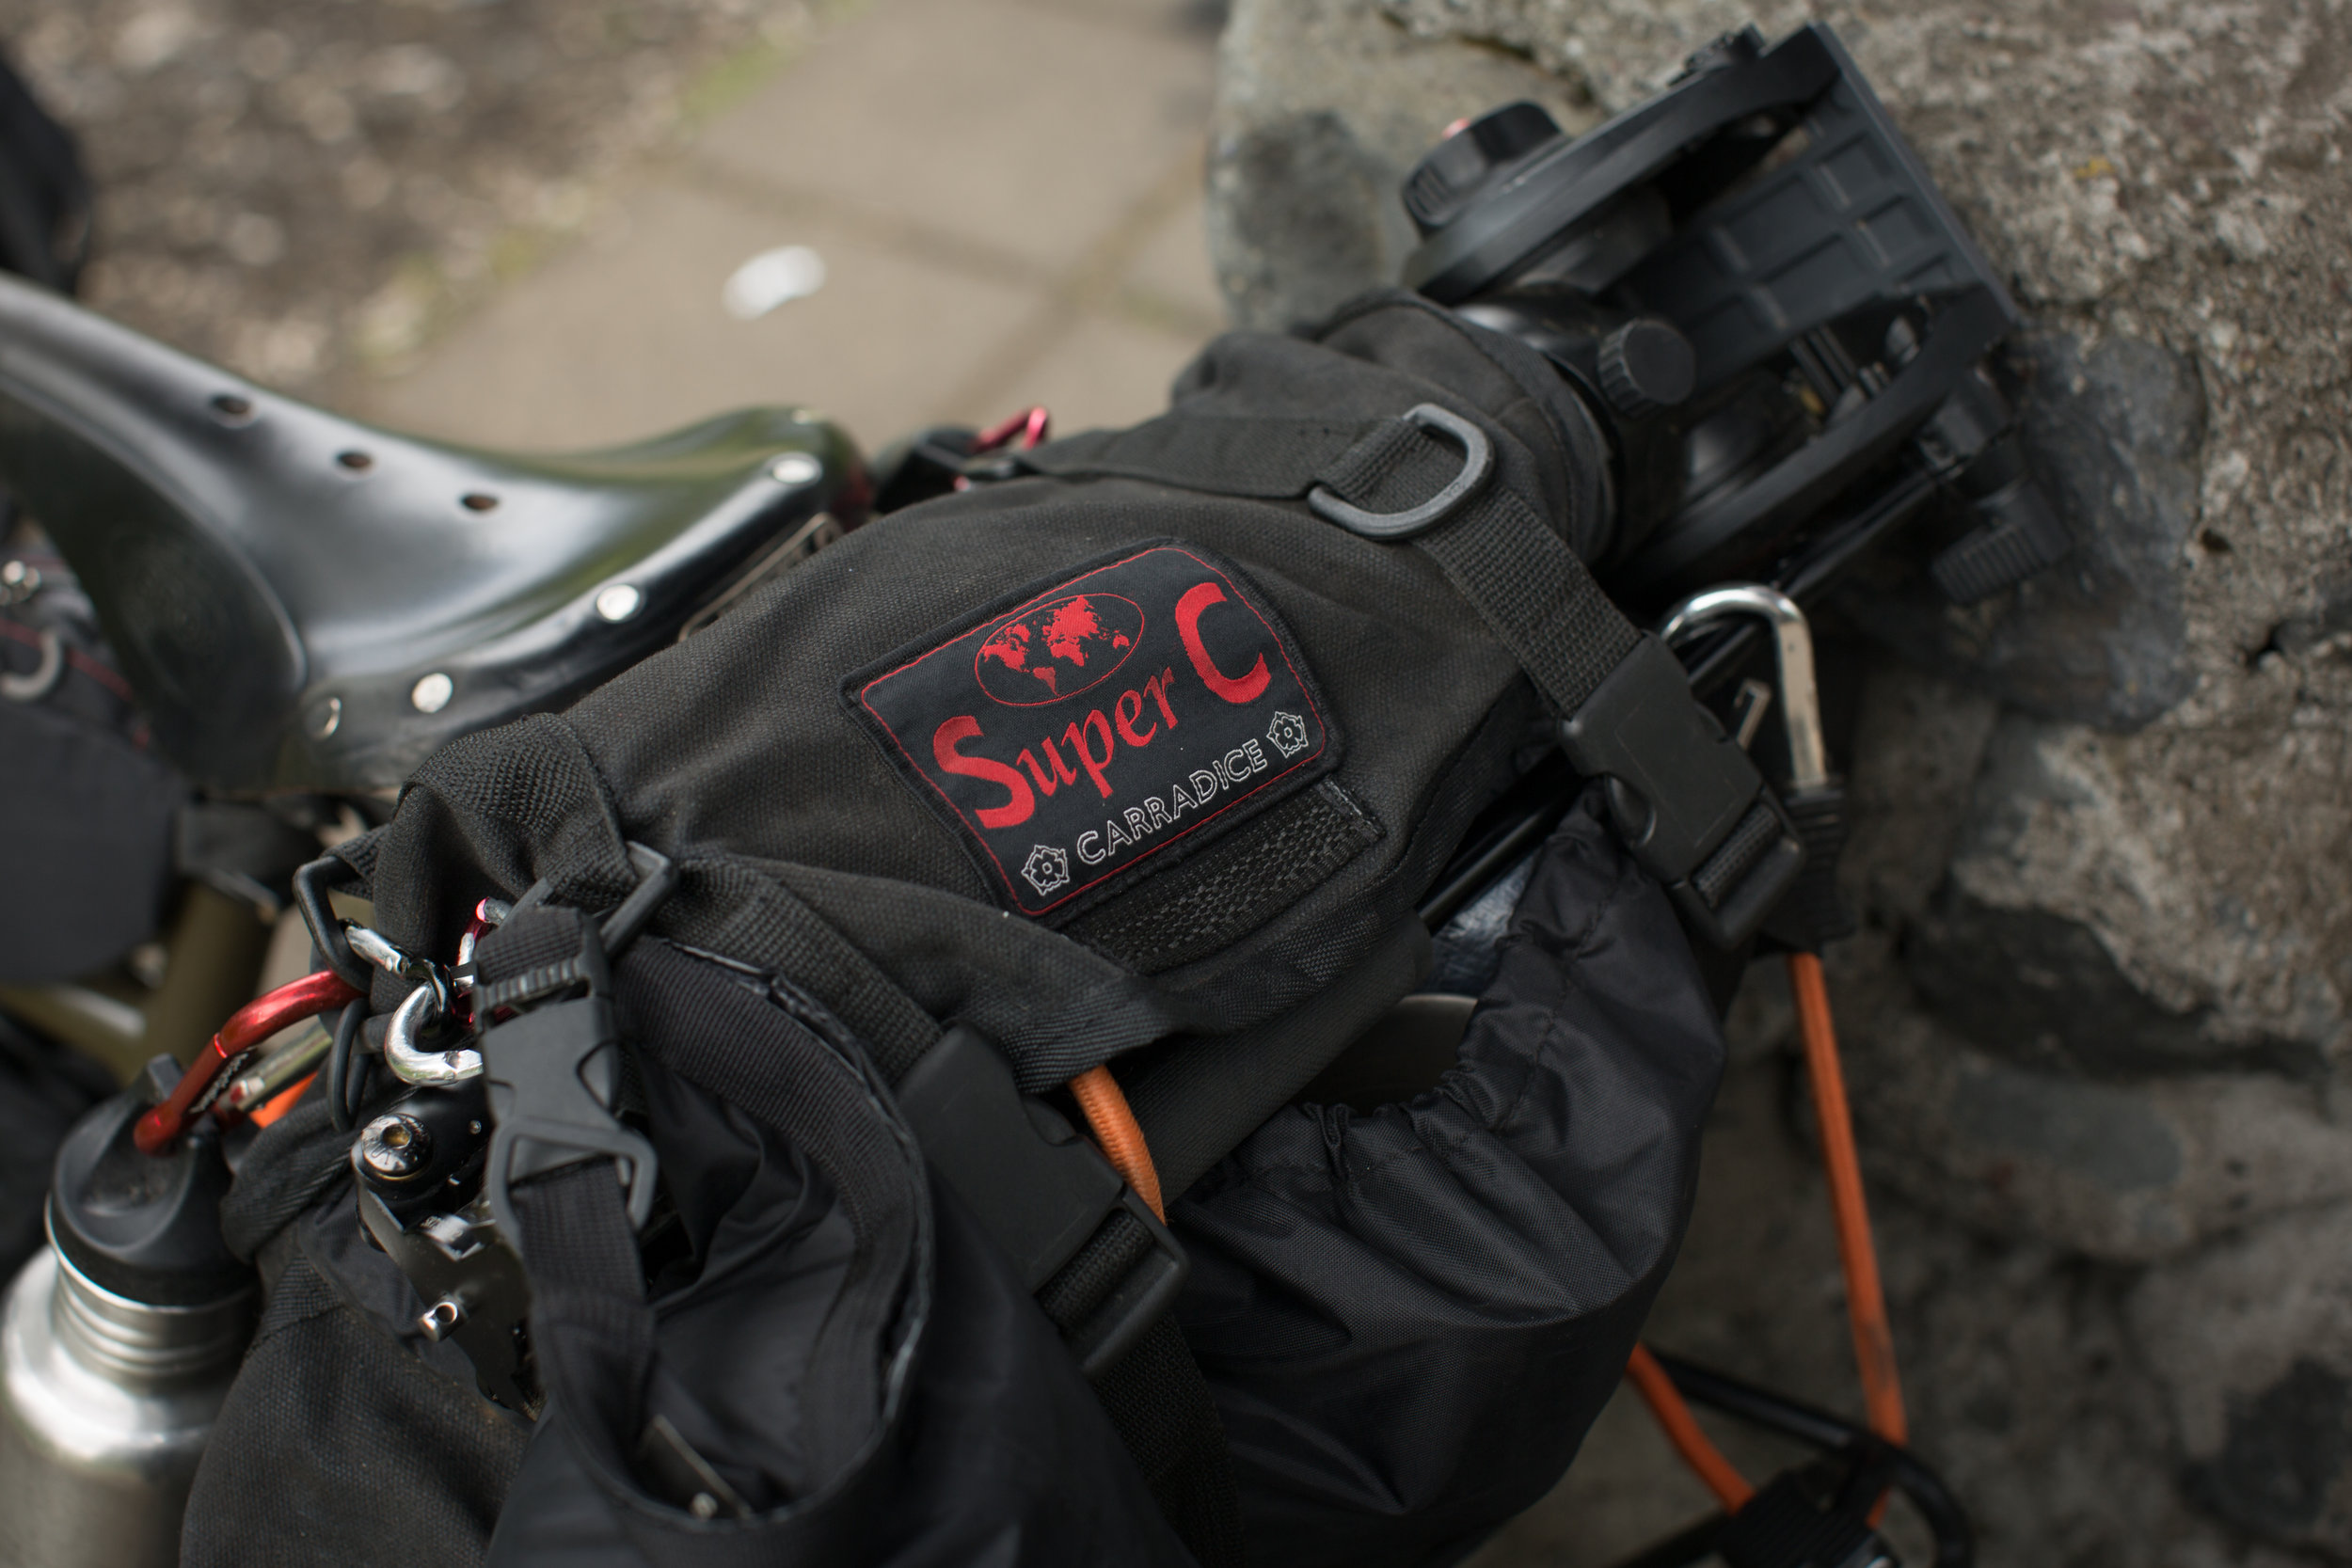 The Carradice Longflap Camper was the first bike touring bag I ever bought and remains one of my favourites. However, I decided to opt for the slightly smaller   Super C   for Iceland and it didn't disappoint.There's definitely pros/cons, but ultimately it's another bomb proof bag that's perfect for bikepacking.